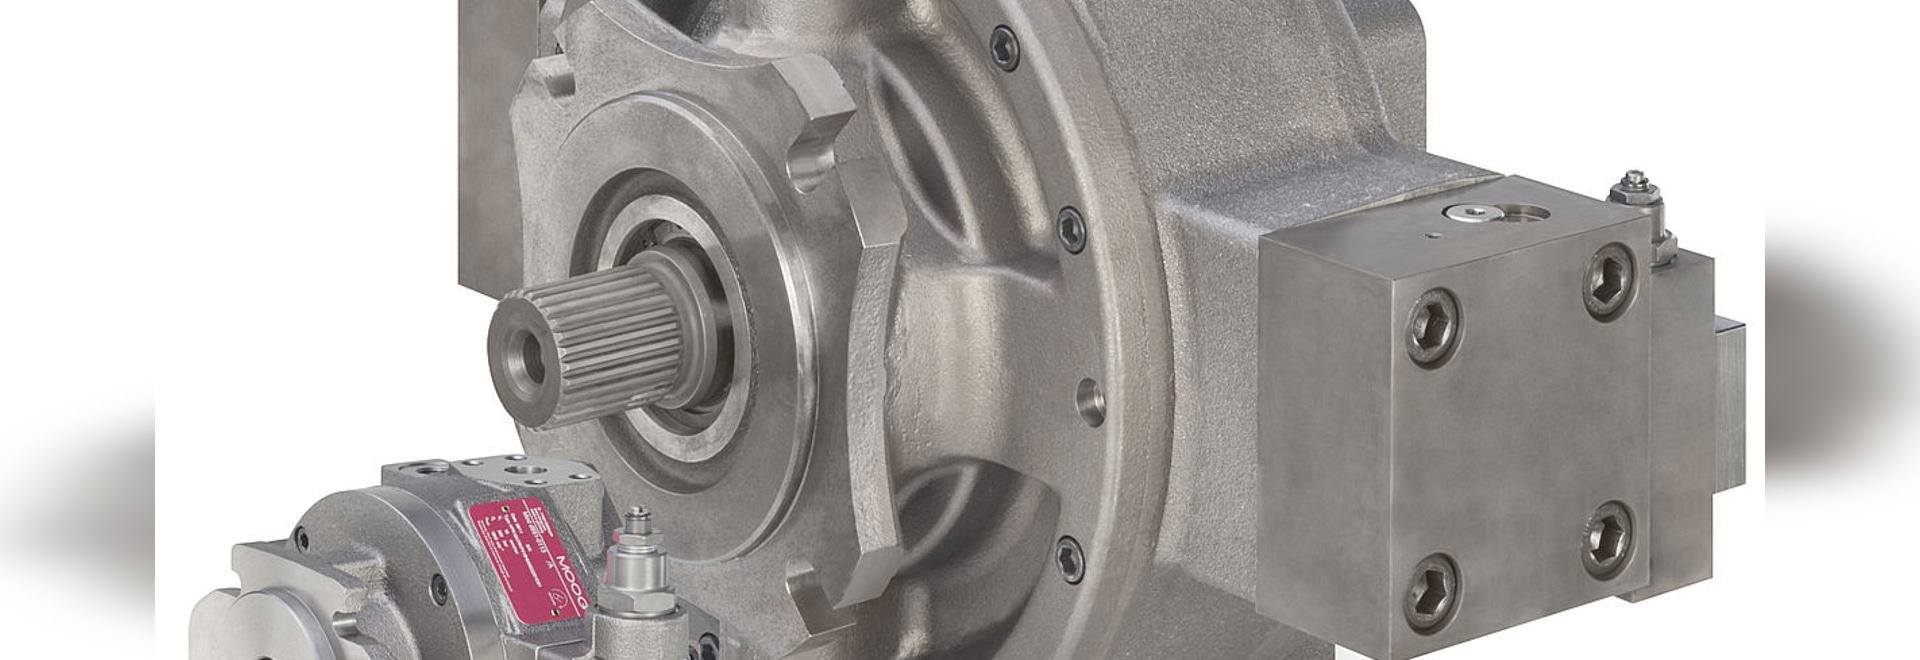 Moog Unveils its Largest Radial Piston Pump for Industrial Applications